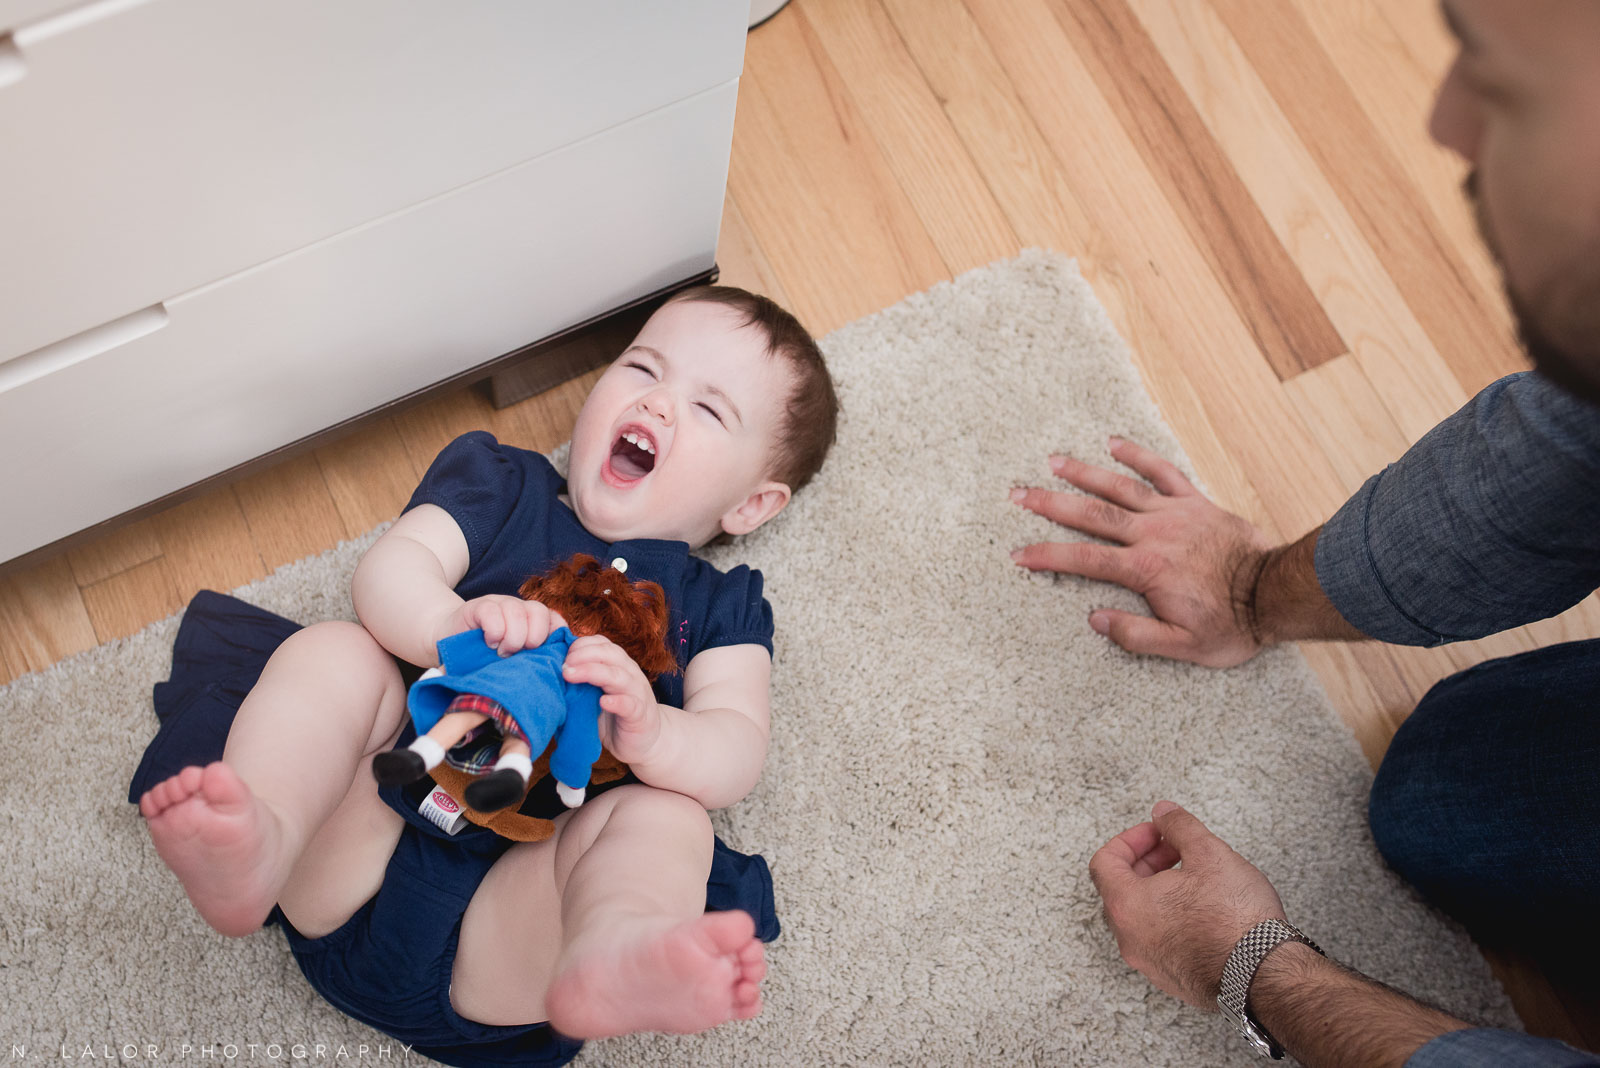 1-year old tantrum while holding a Madeline doll. Lifestyle family photograph by N. Lalor Photography.